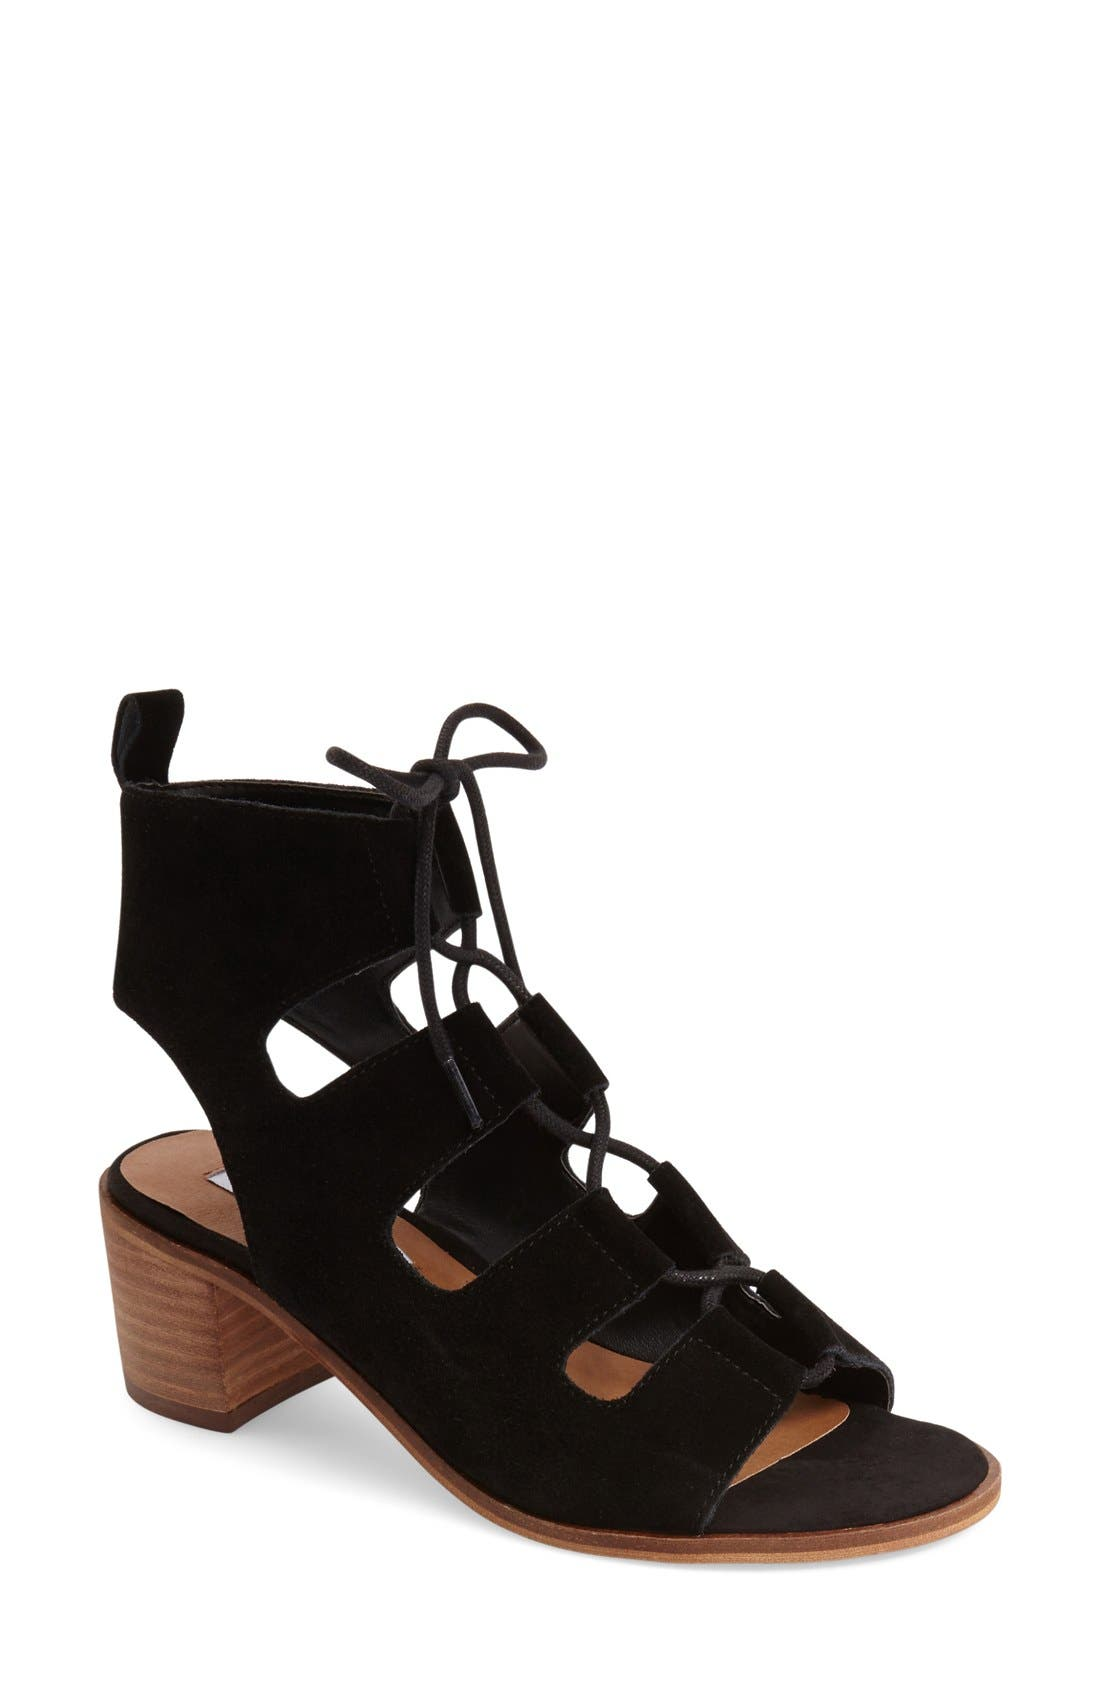 'Ronlyn' Ghillie Sandal,                         Main,                         color, 006